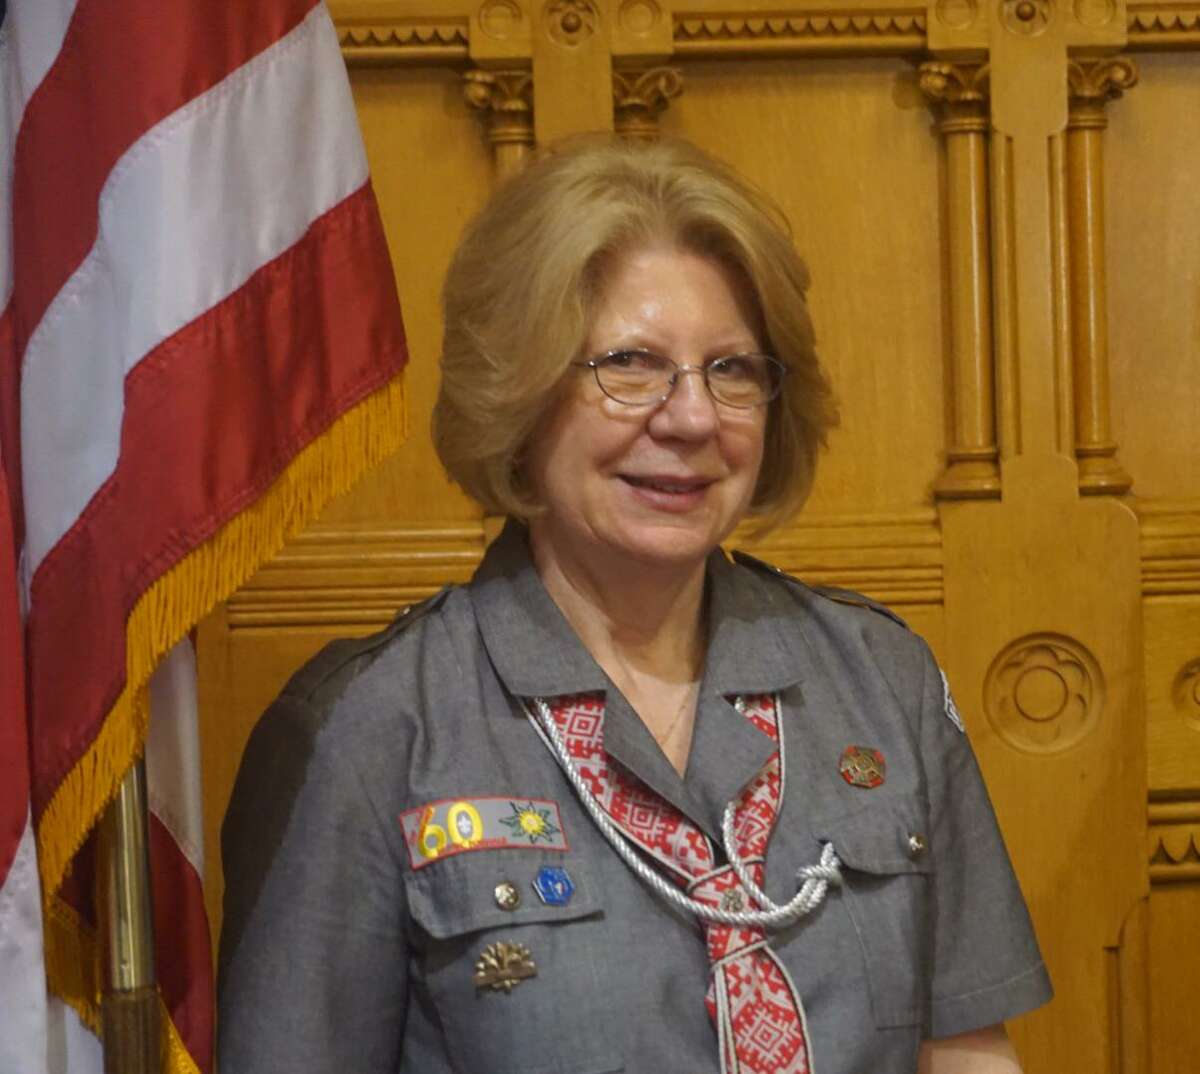 Irena Dzierbinski of Monroe was honored at Connecticut Immigrant Day, Wednesday April 4, 2018, at the Capitol in Hartford, Conn. for her work leading girl scouts in the Polish Scouting Organization in Connecticut.